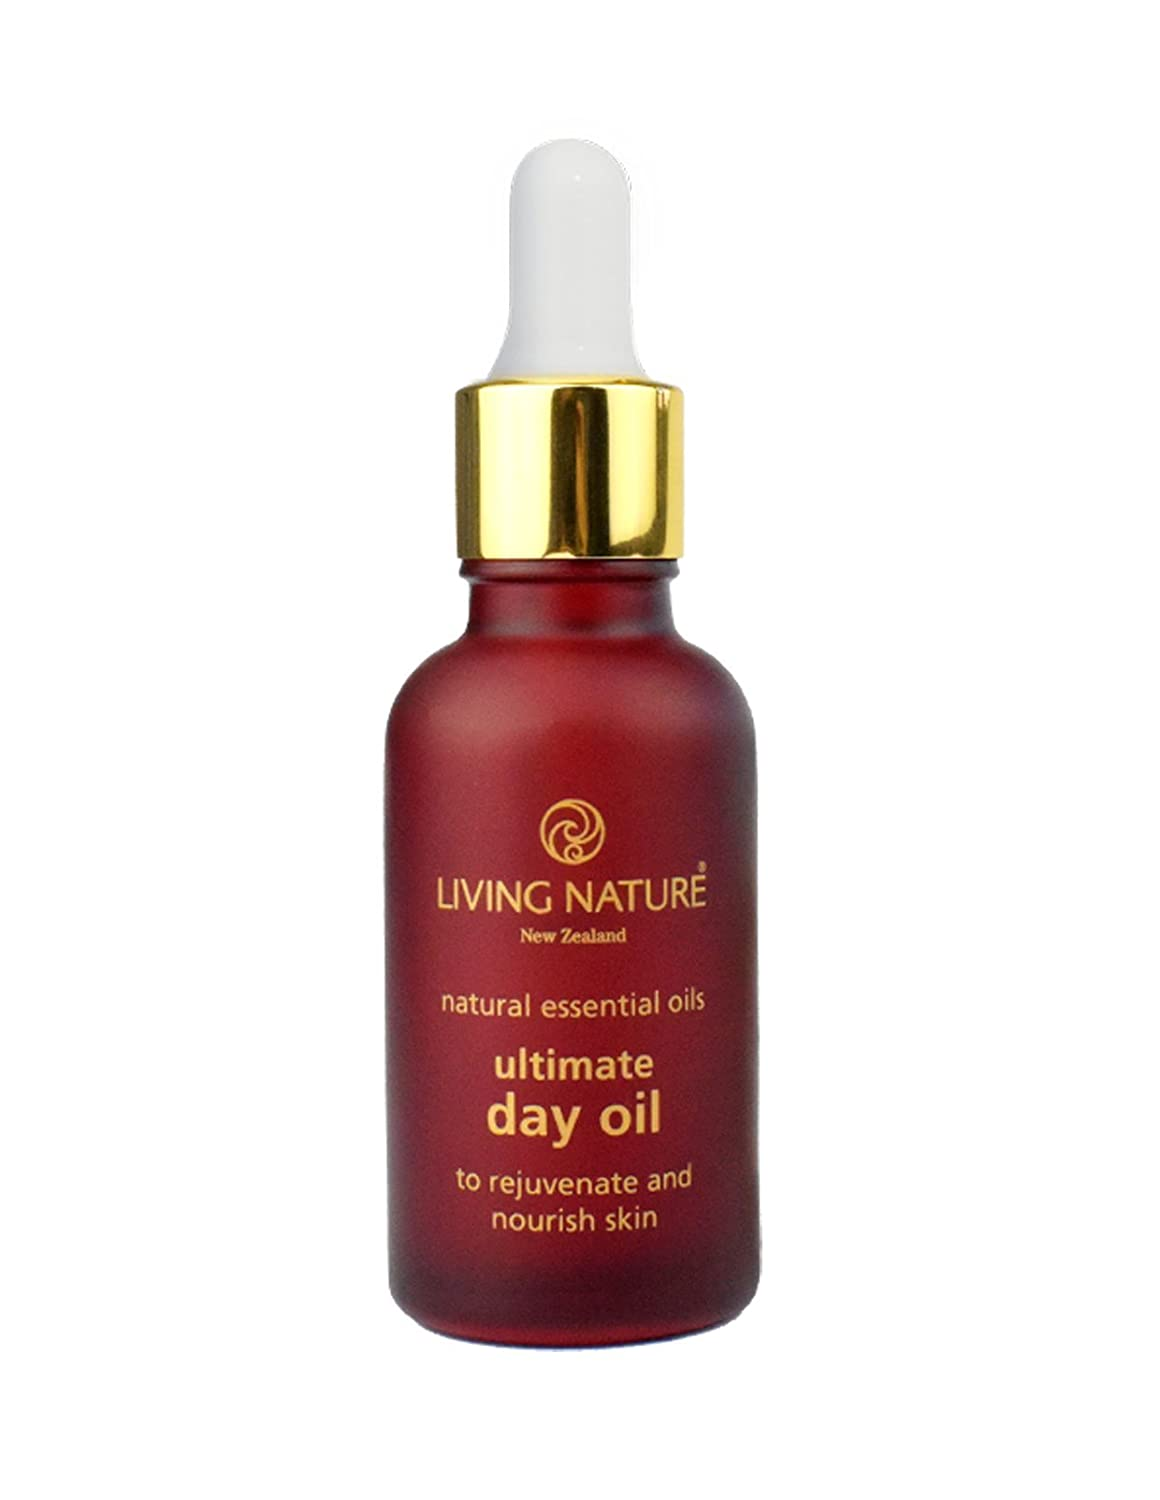 Living Nature Ultimate Day Oil to Rejuvenate and Nourish Skin